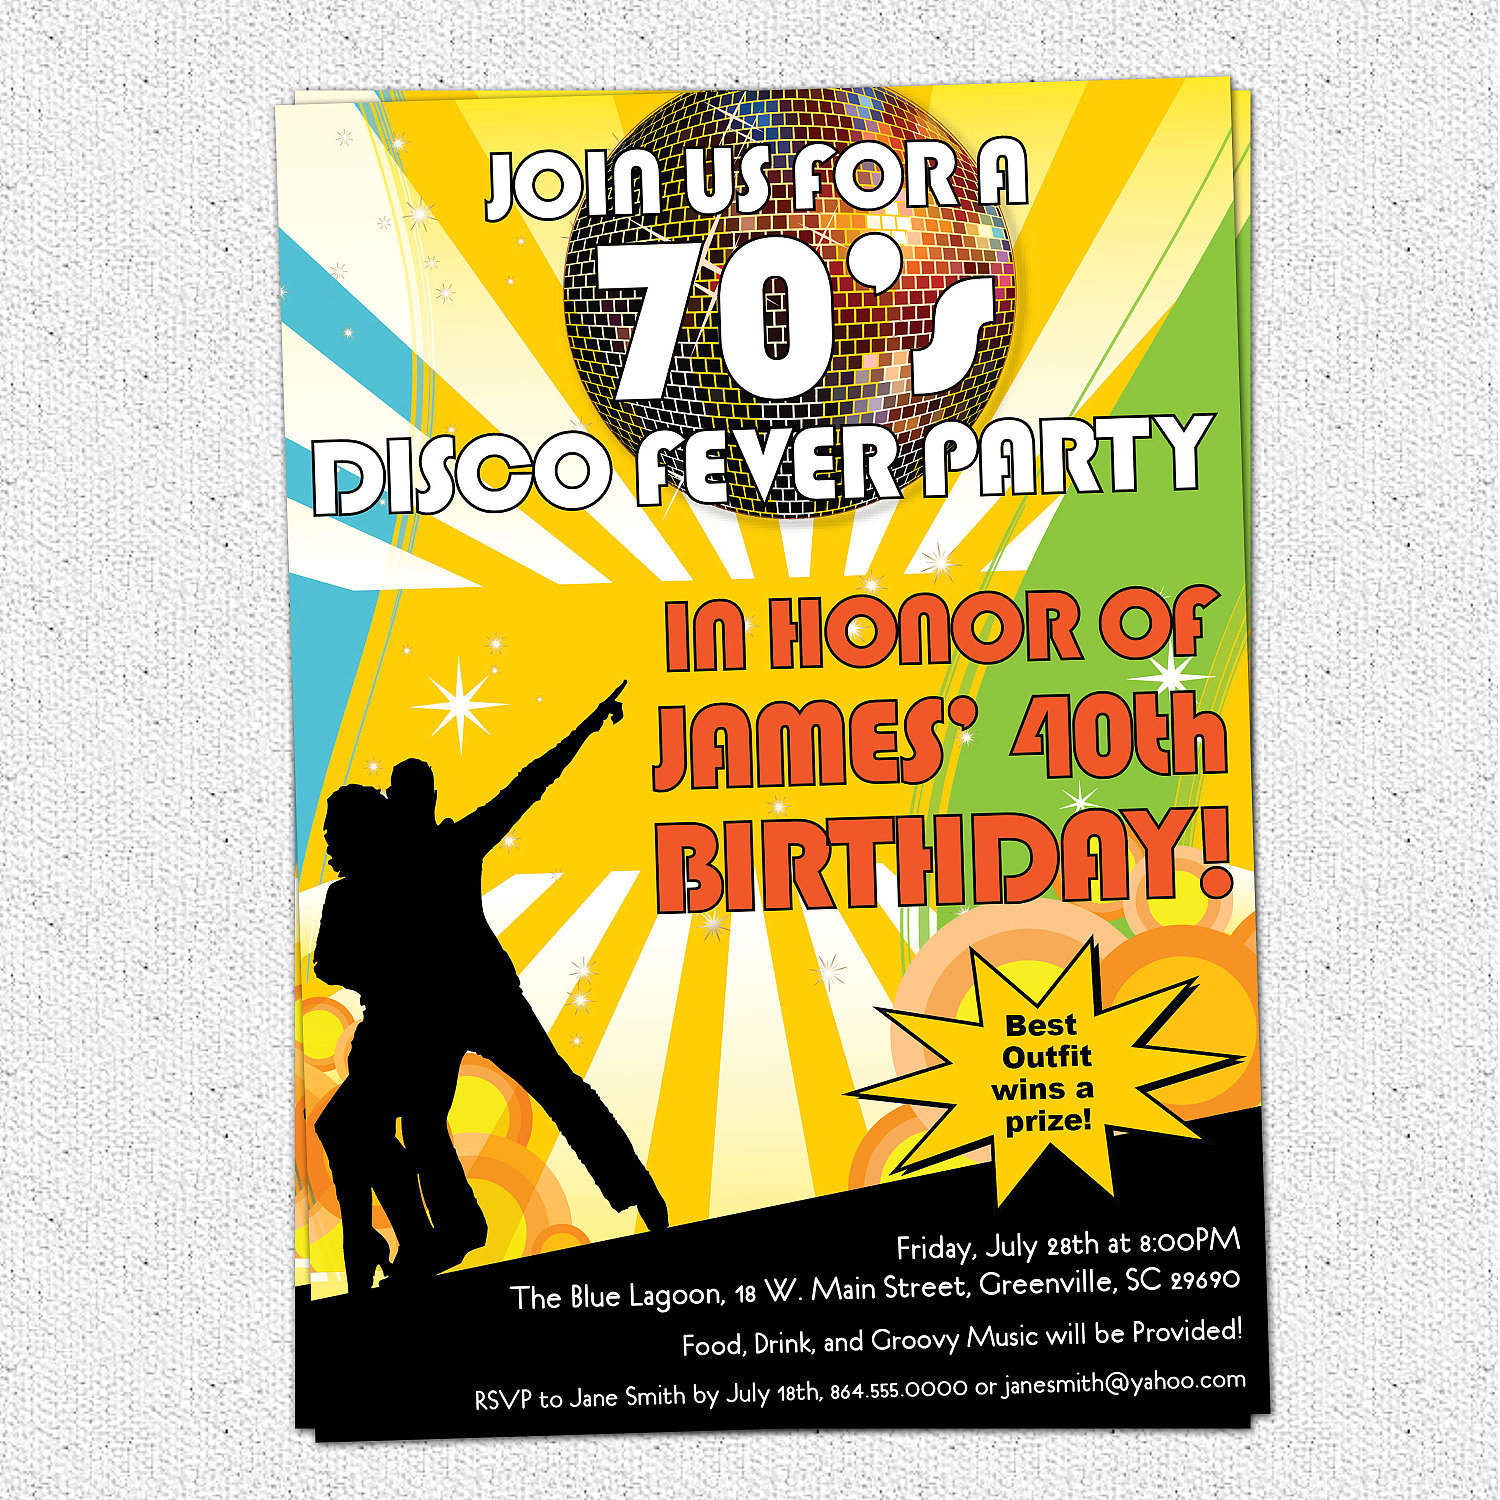 Disco Ball 70s Seventies Themed Party Invitations Birthday Dance Party Set Of 10 Sold By Ohcreativeone Llc On Storenvy